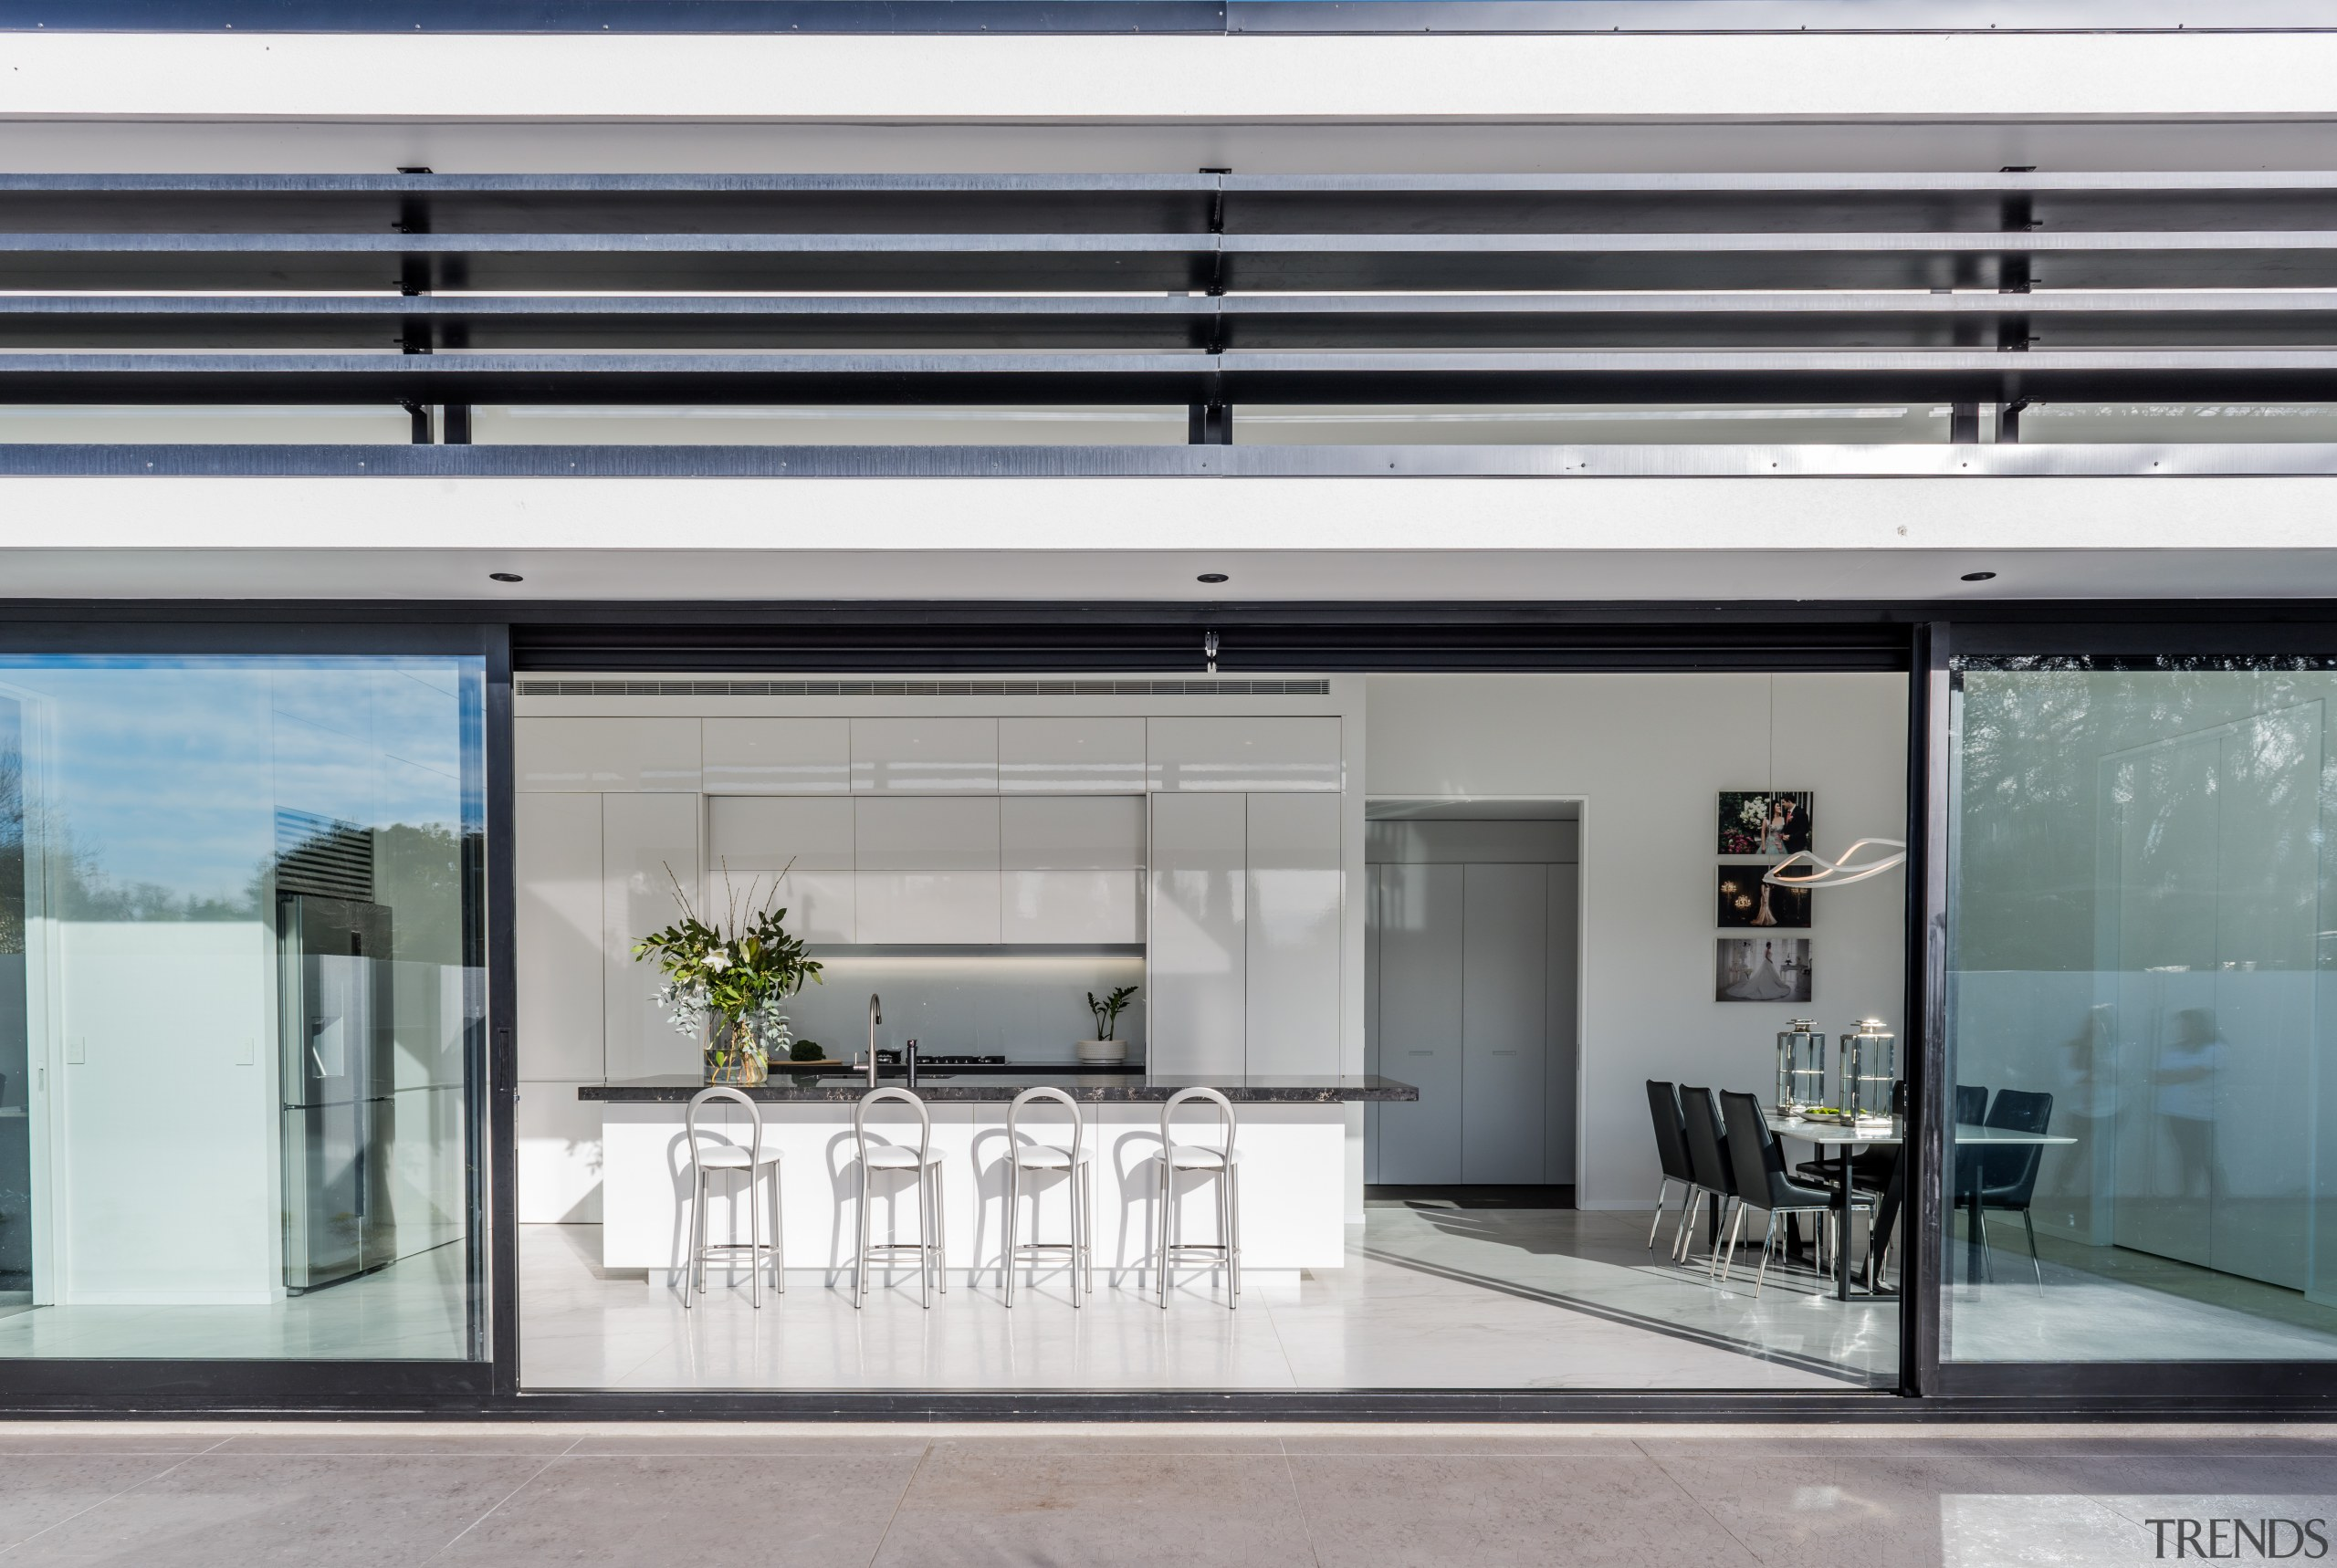 With handleless cabinetry closed, this pristine white entertainer's door, glass, house, interior design, window, gray